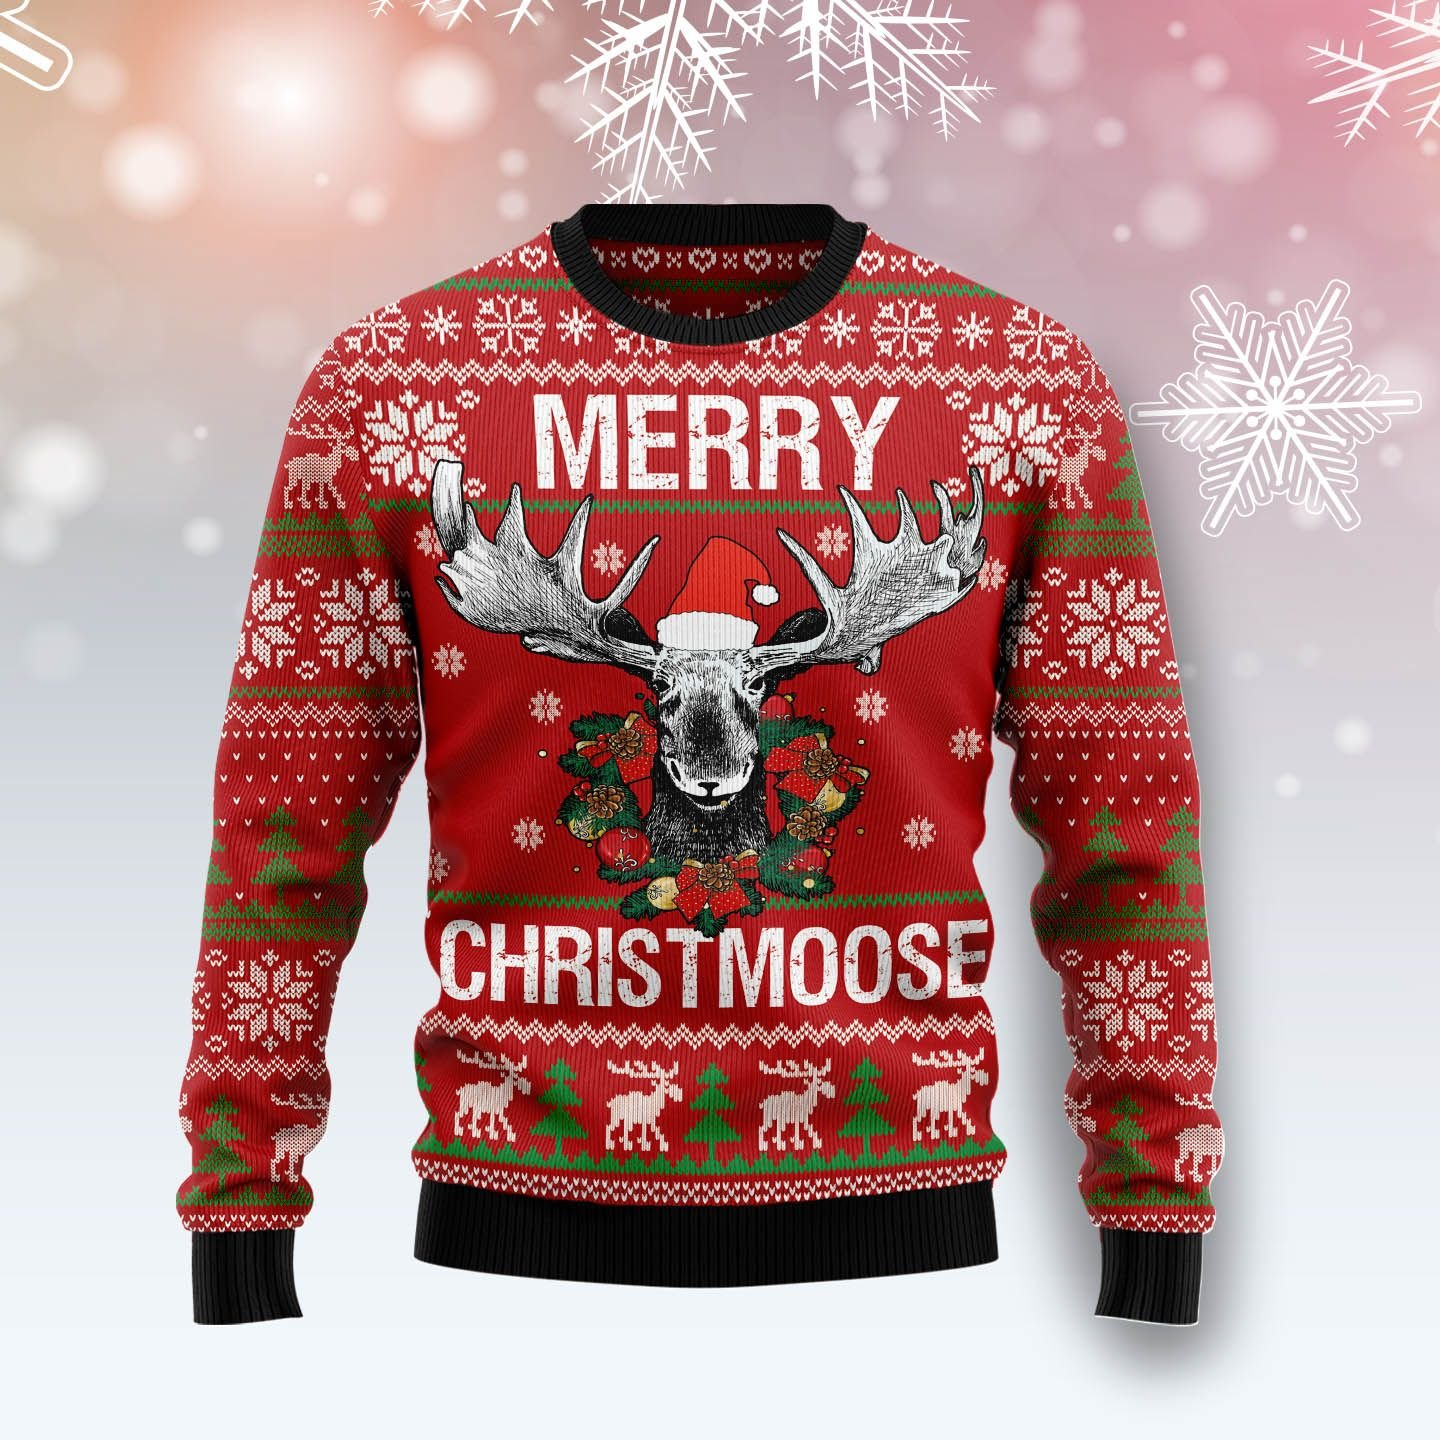 merry christmoose all over printed ugly christmas sweater 3